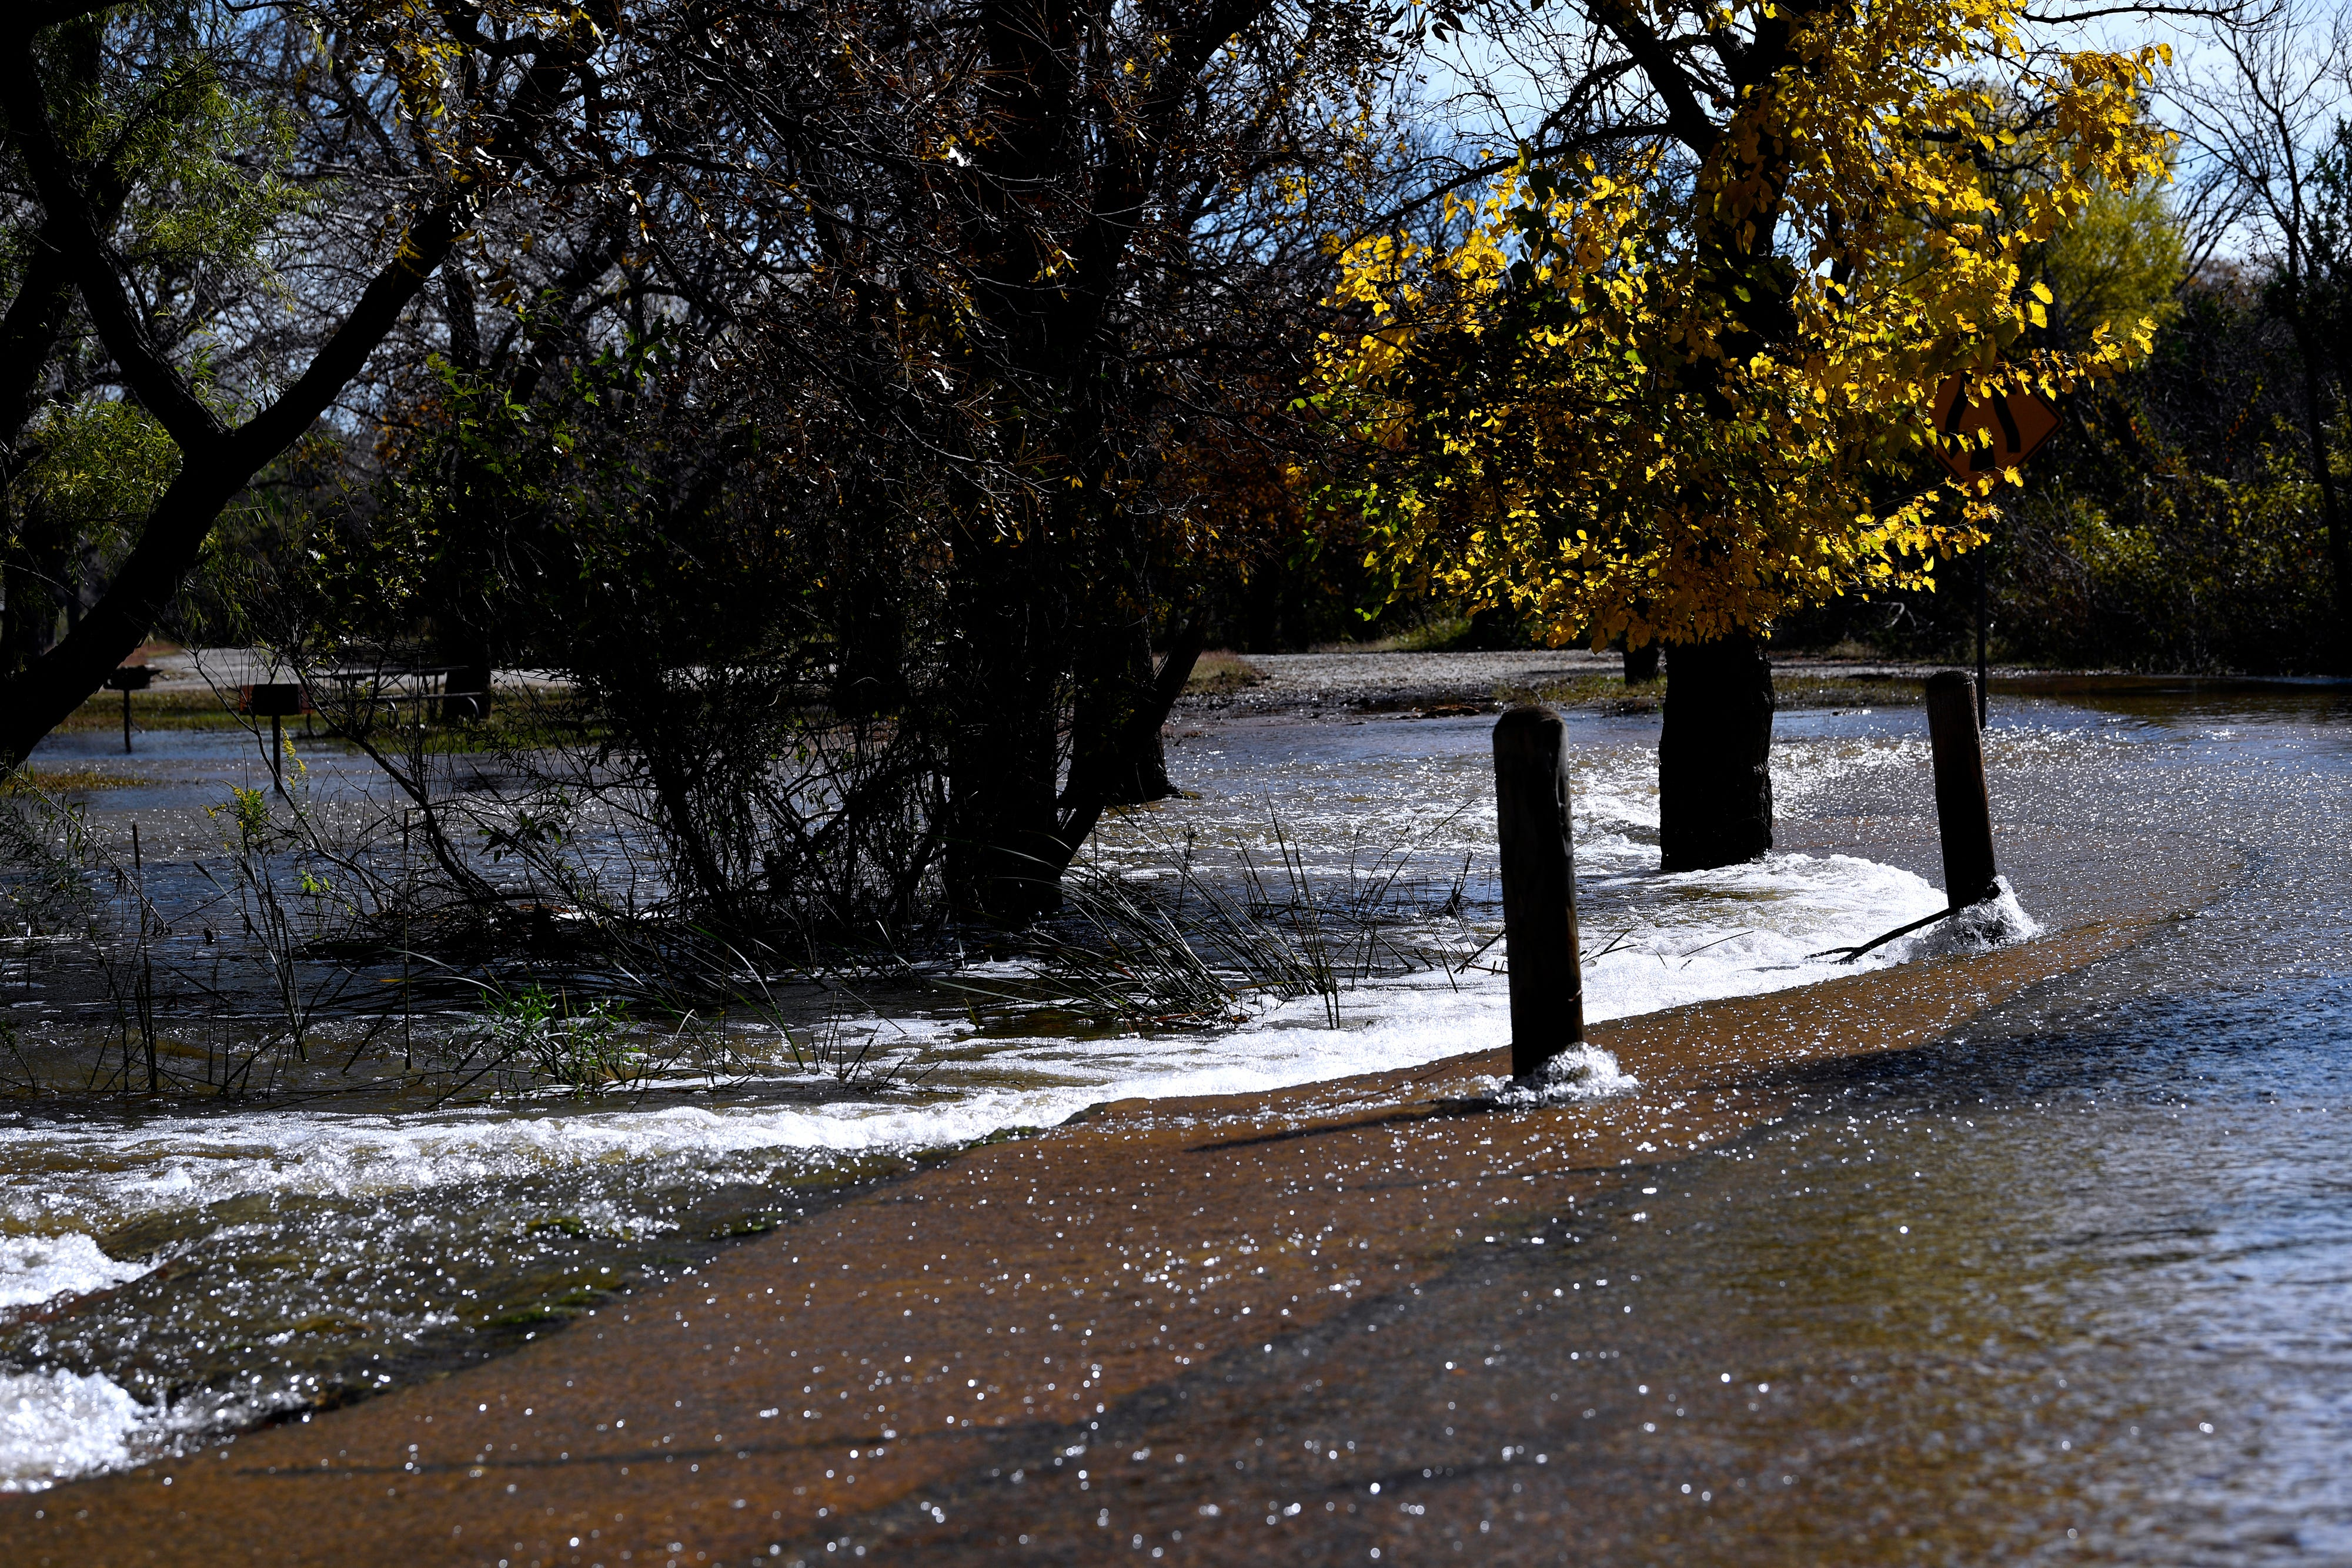 Water flows across a road Thursday at Abilene State Park. Runoff from heavy rains closed the park last month, which reopened Thursday with limited access. September and October were the two wettest months in the state's history.